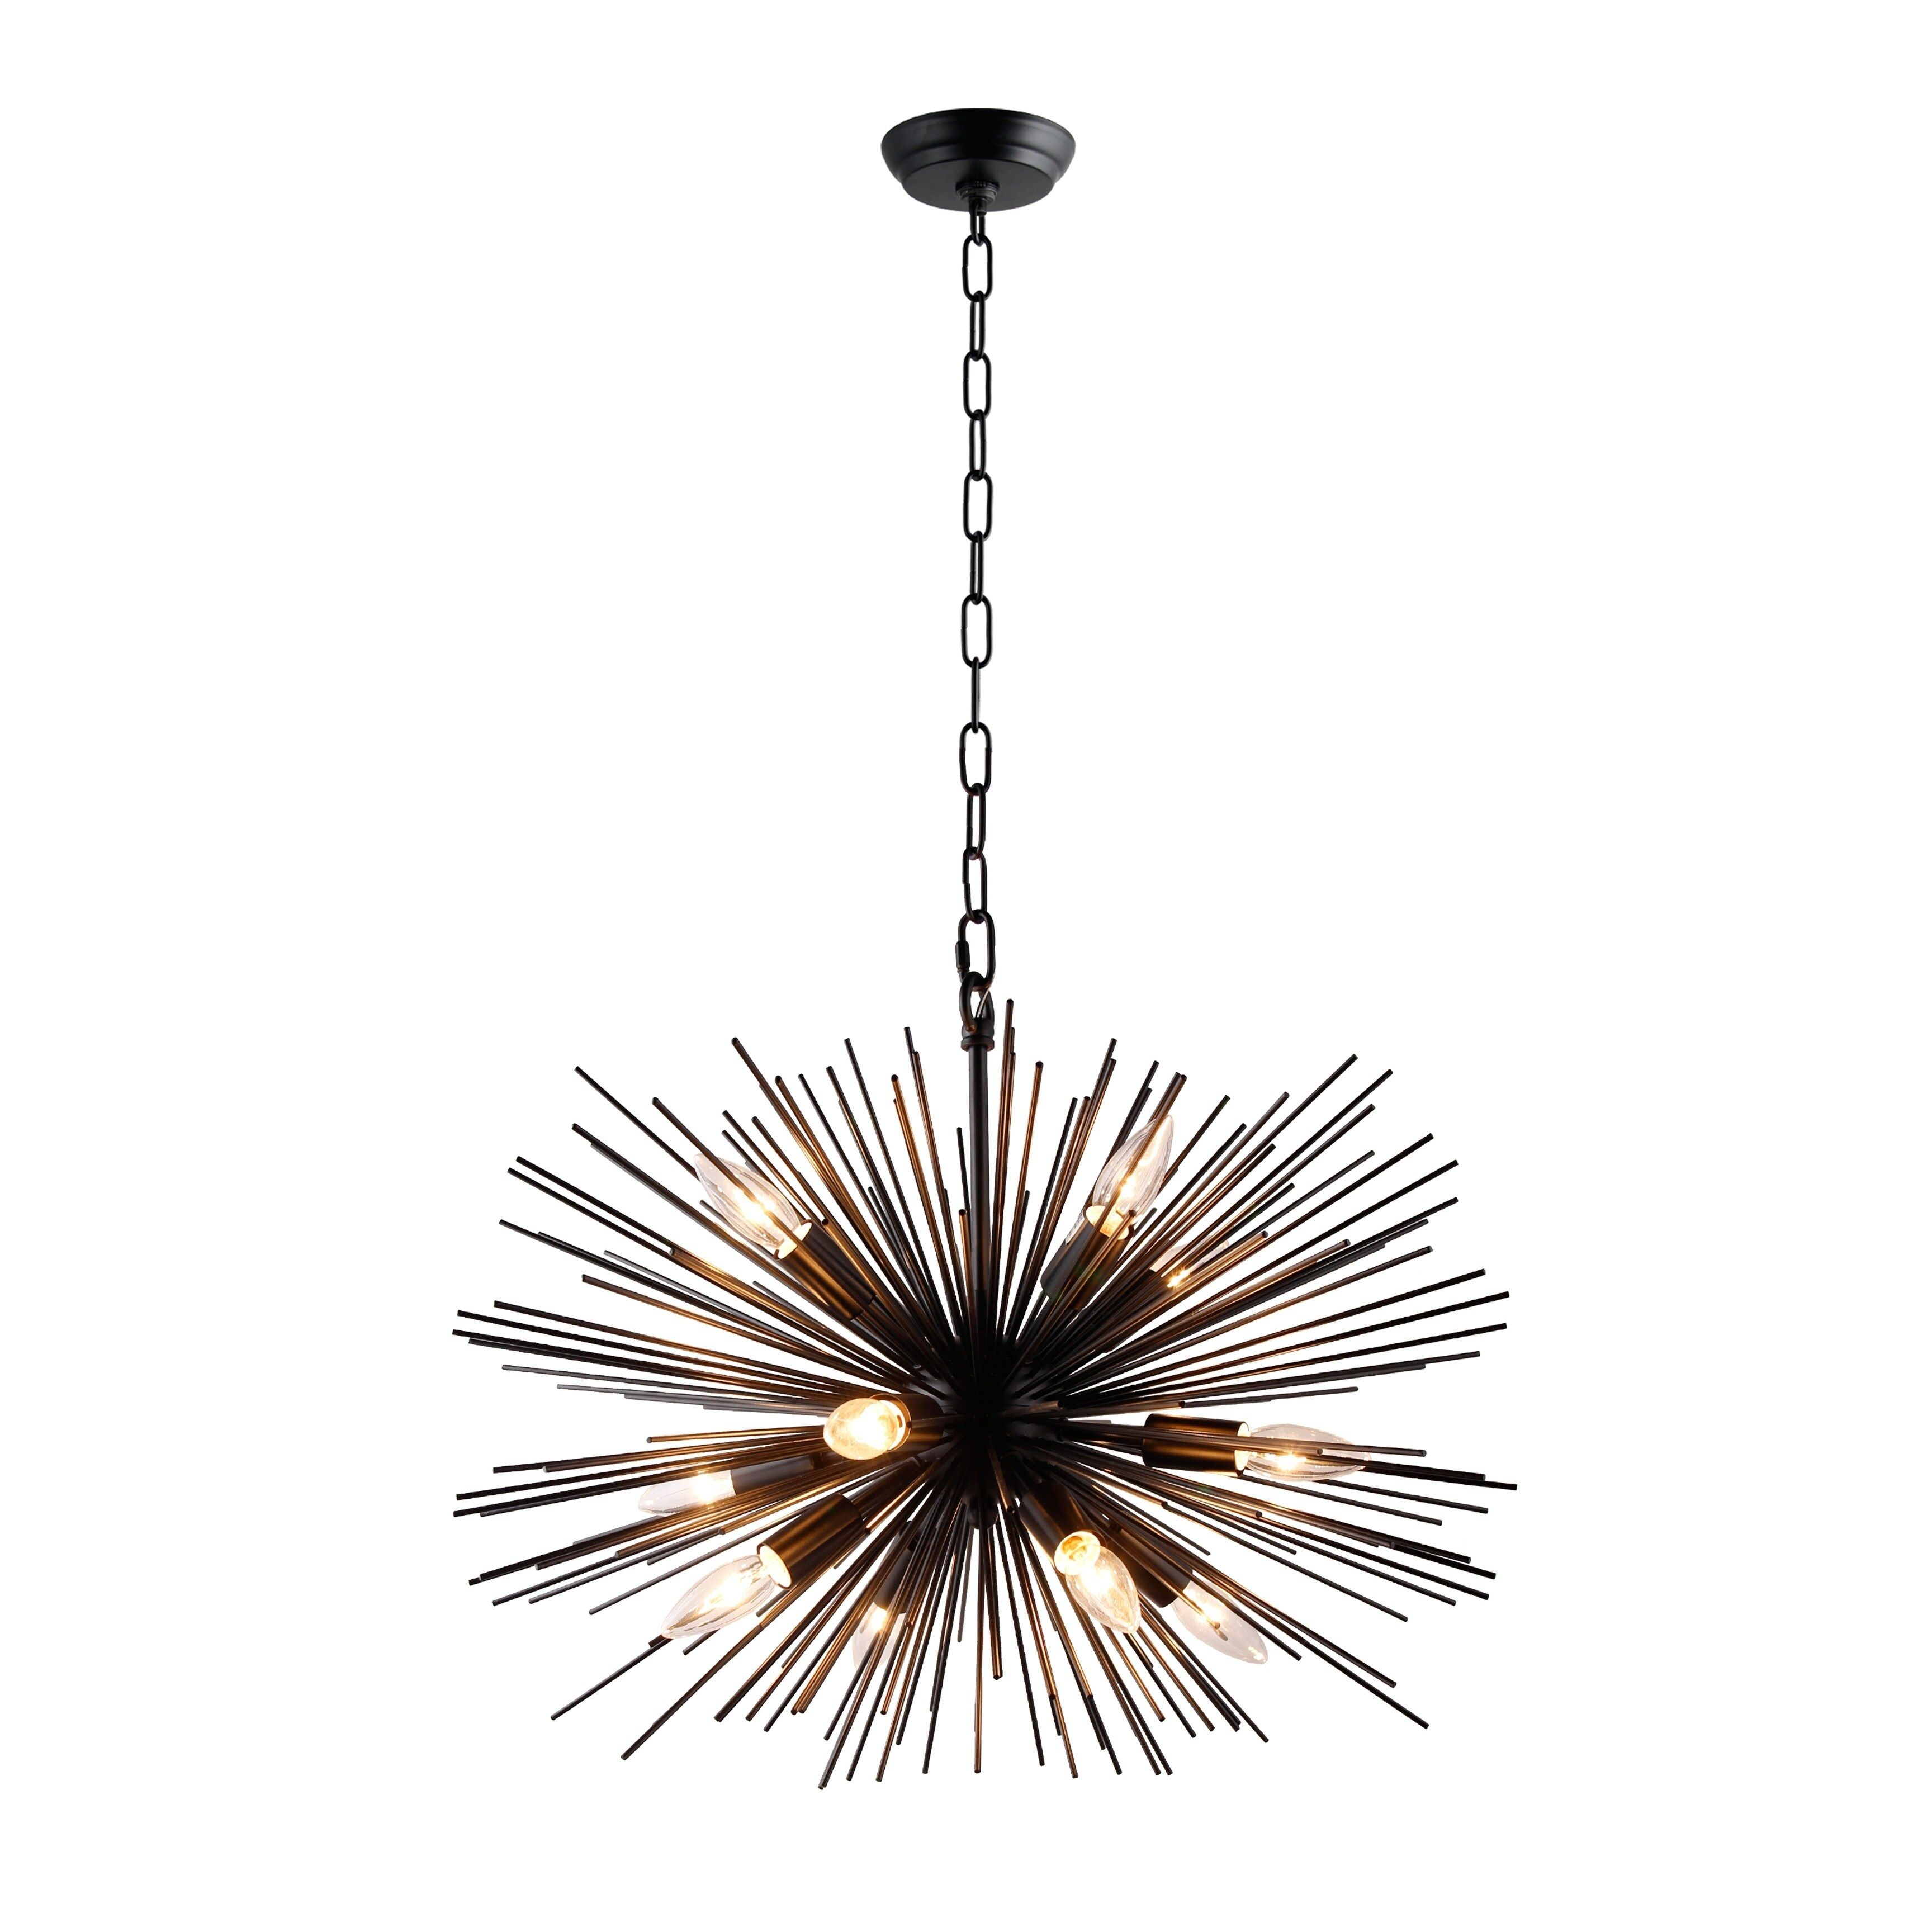 Pin On Products With Nelly 12 Light Sputnik Chandeliers (View 23 of 30)